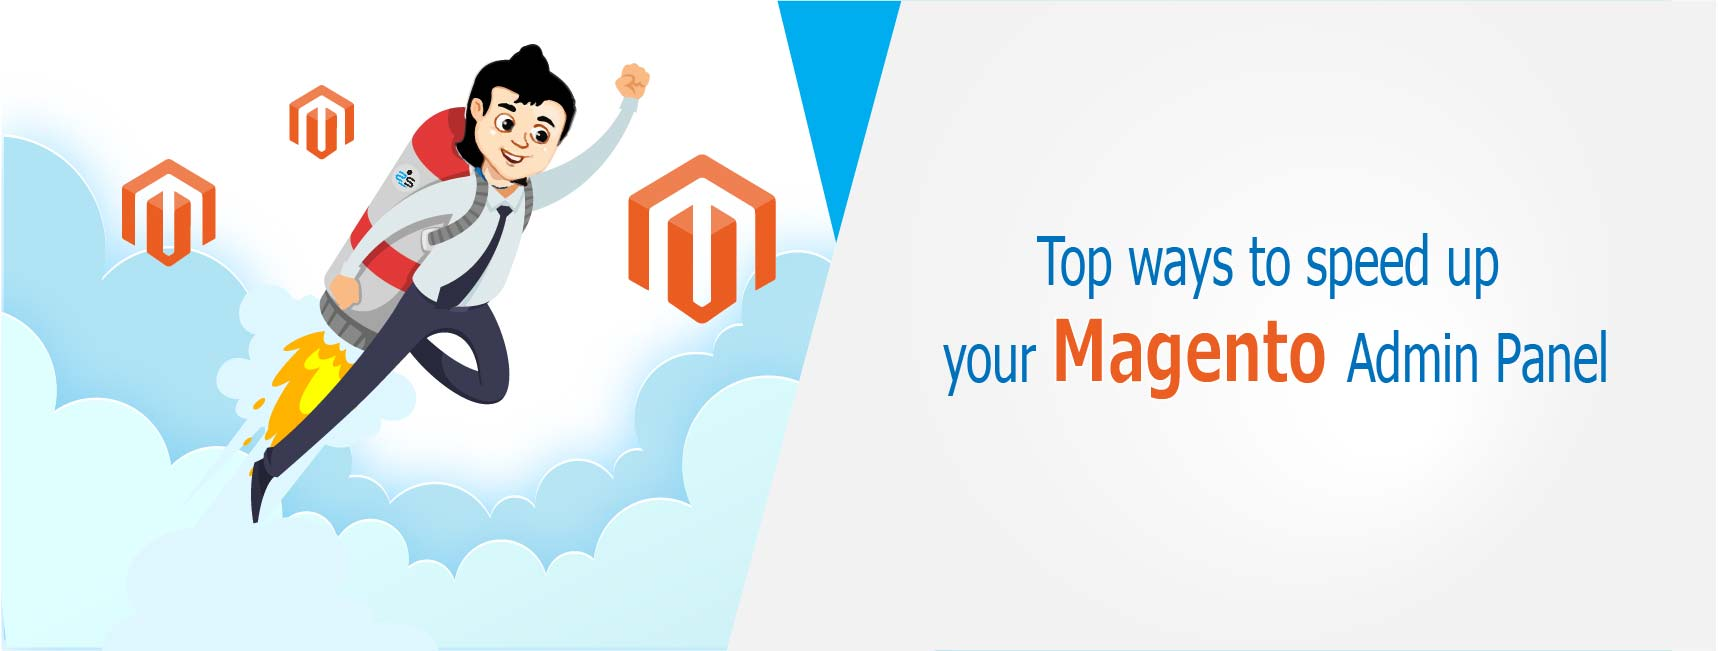 Top Ways To Speed Up Your Magento Admin Panel